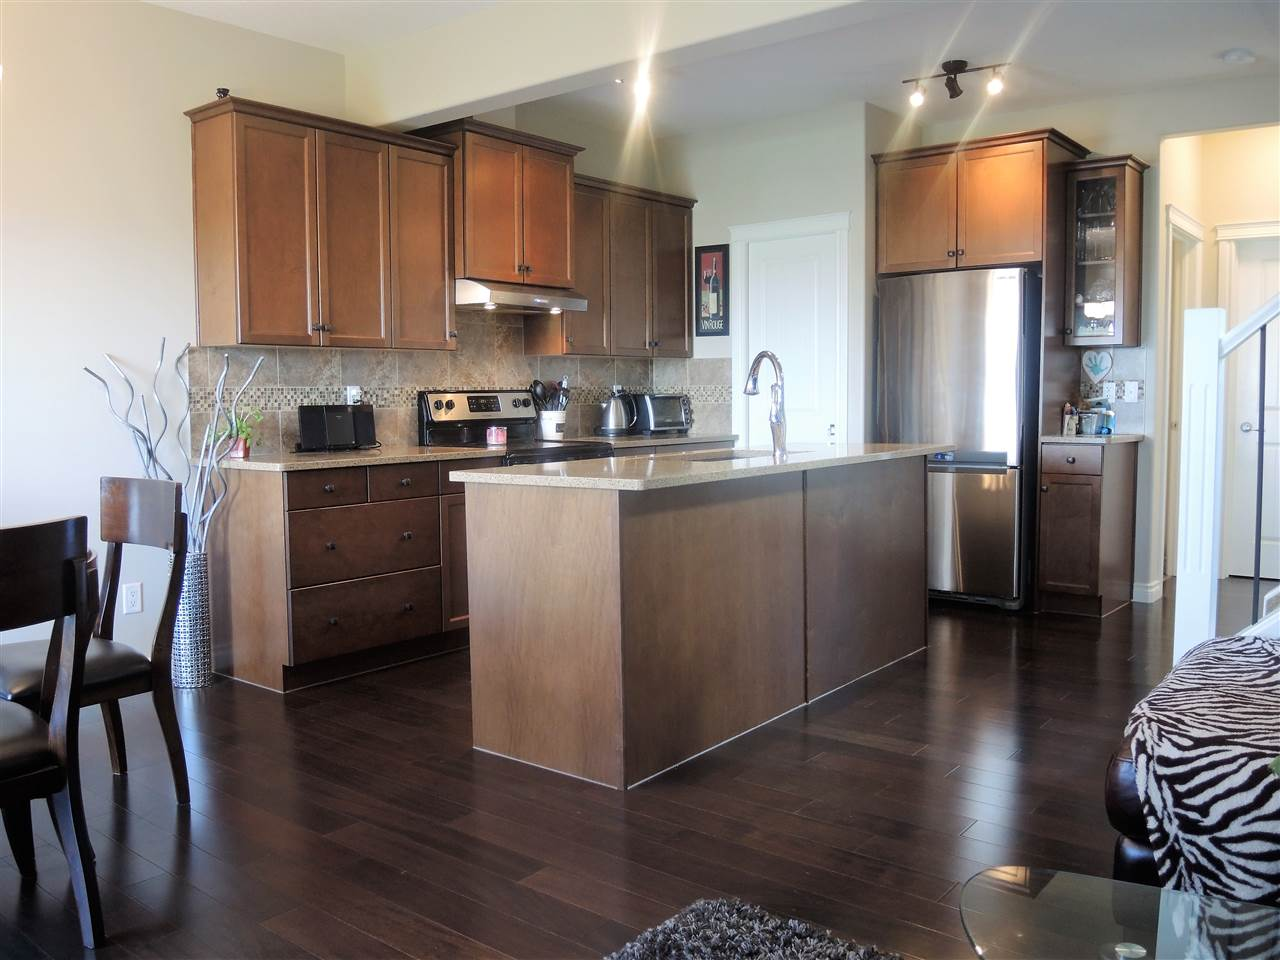 Photo 8: 16106 10 Avenue in Edmonton: Zone 56 House Half Duplex for sale : MLS® # E4069811